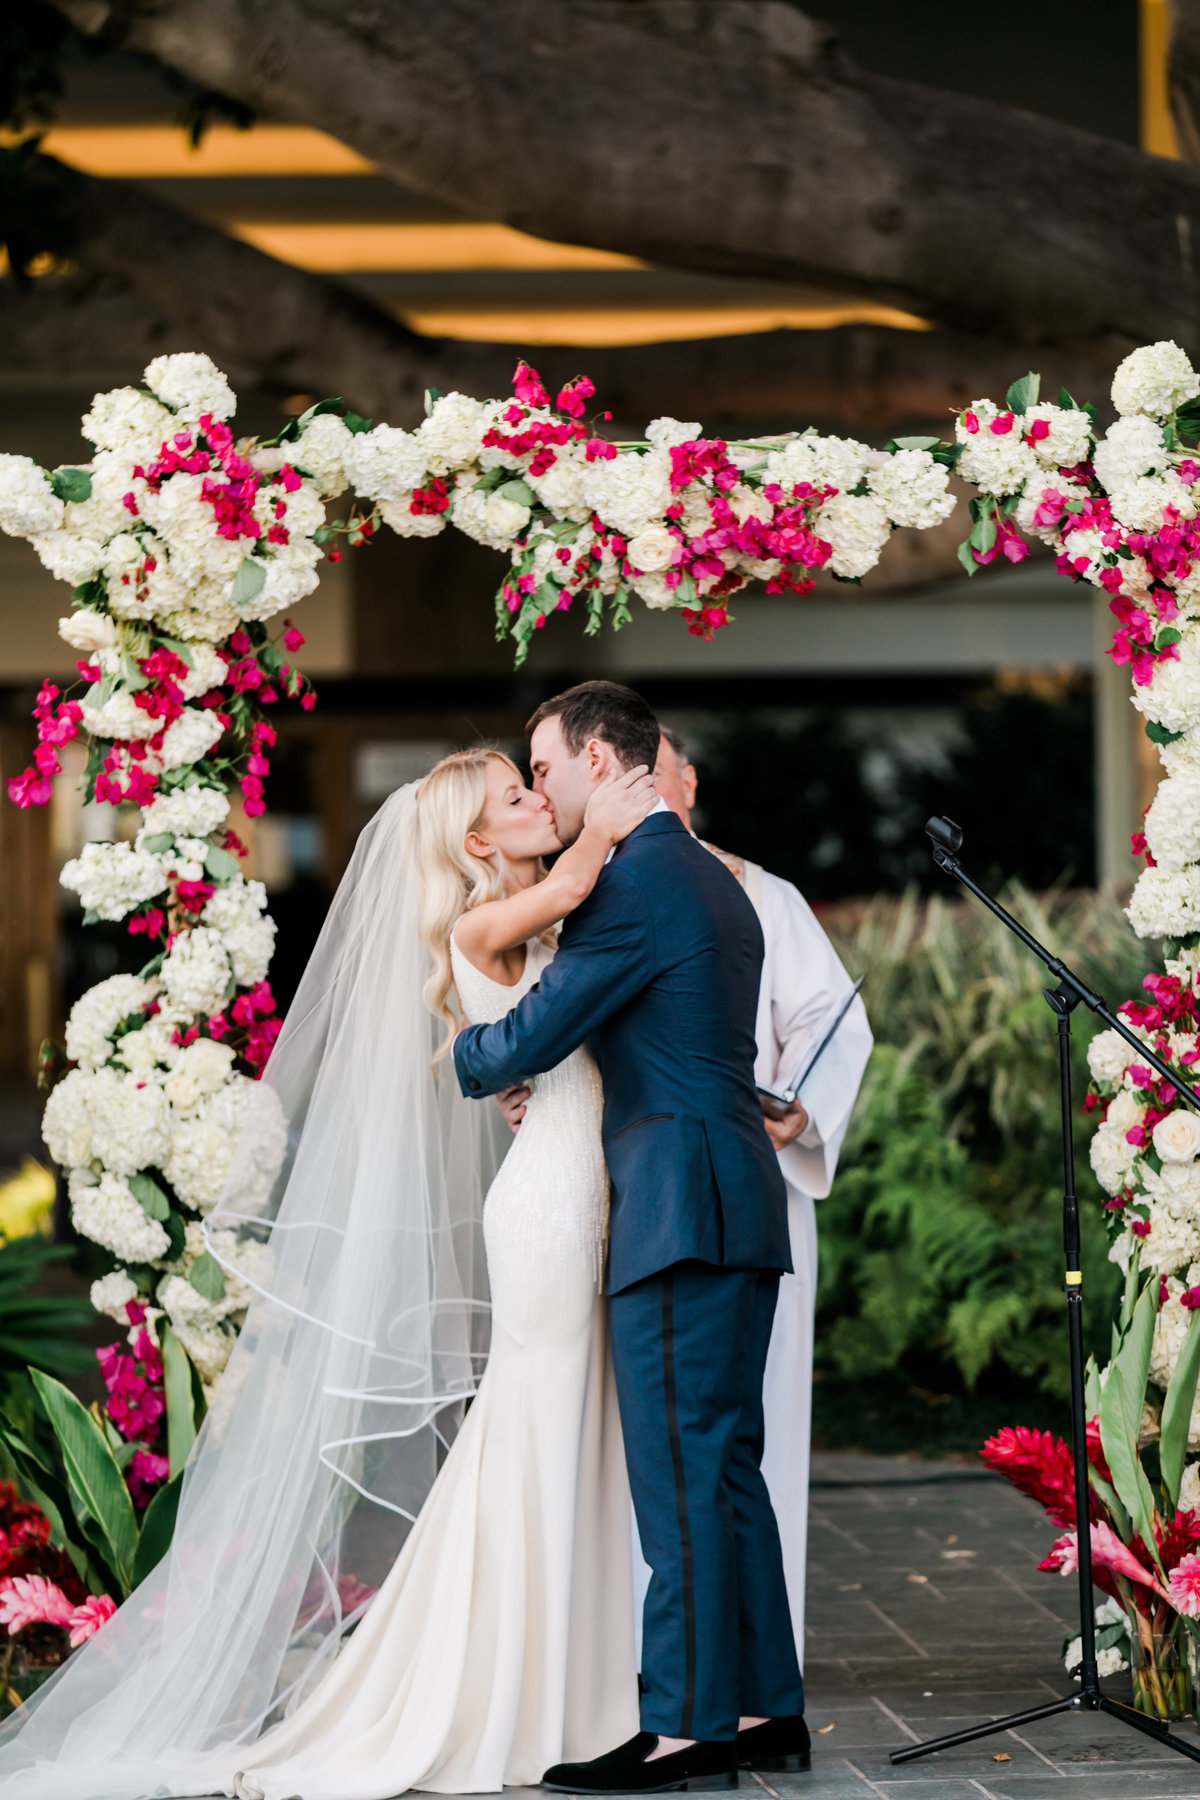 Tropical_Modern_Fairmont_Santa_Monica_Navy_Pink_Wedding_Valorie_Darling_Photography - 84 of 146